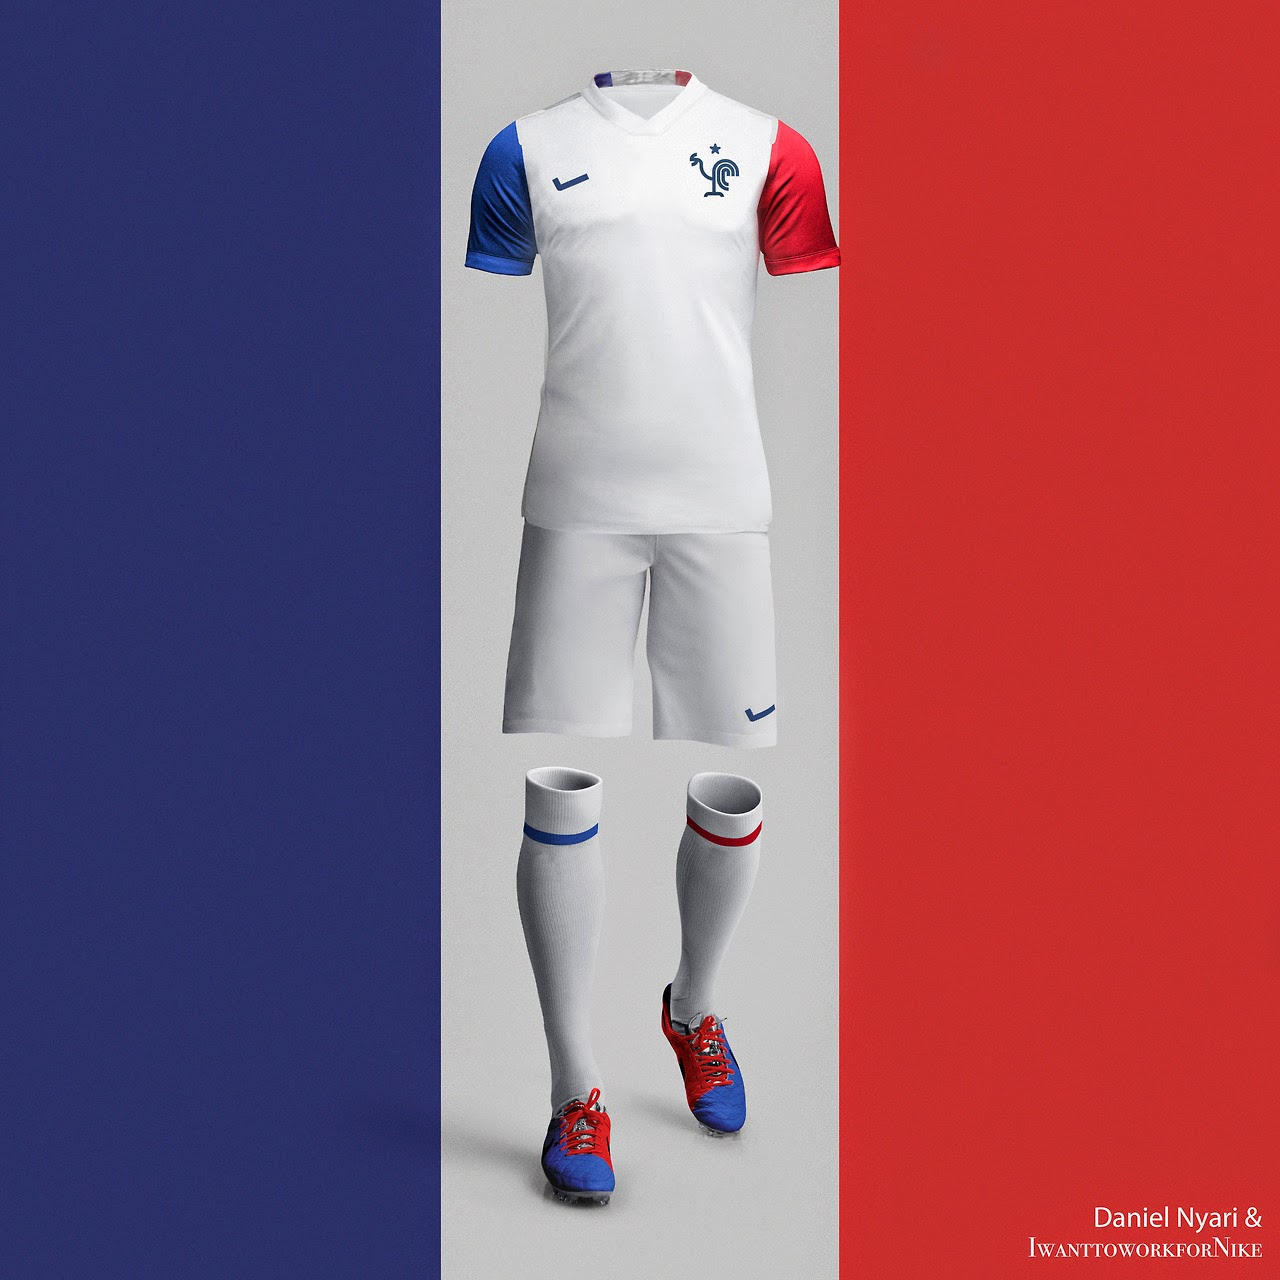 I WANT TO WORK FOR NIKE - Game Of Thrones House Themed World Cup Kits fdc09738a